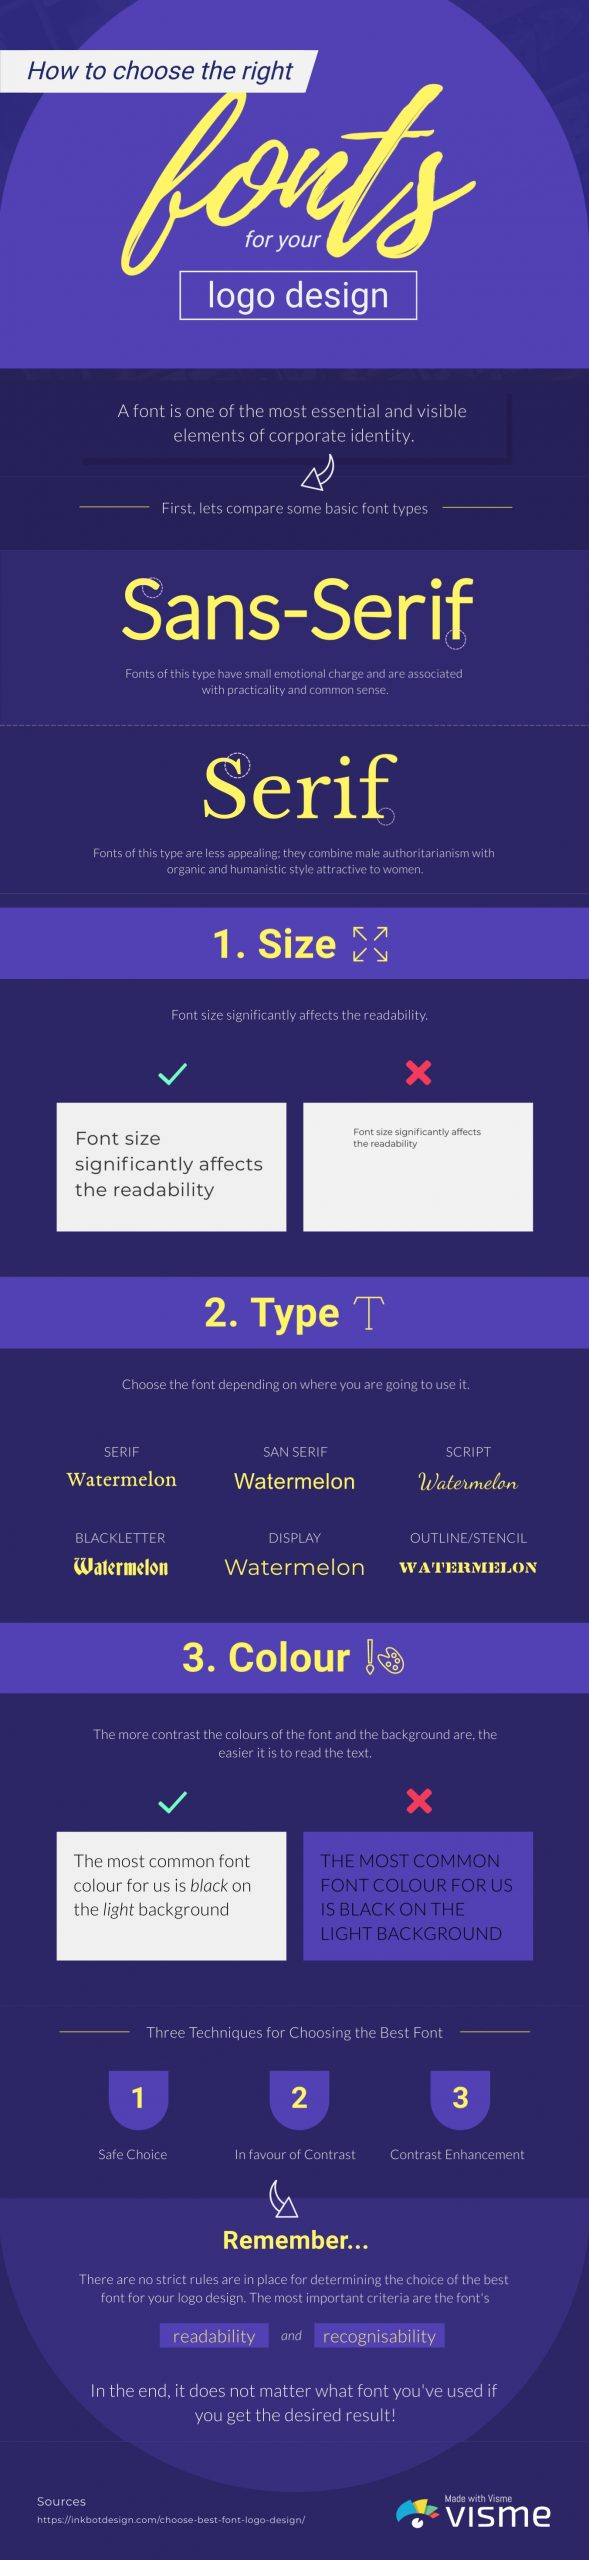 how to design a logo - how to choose the right font infographic